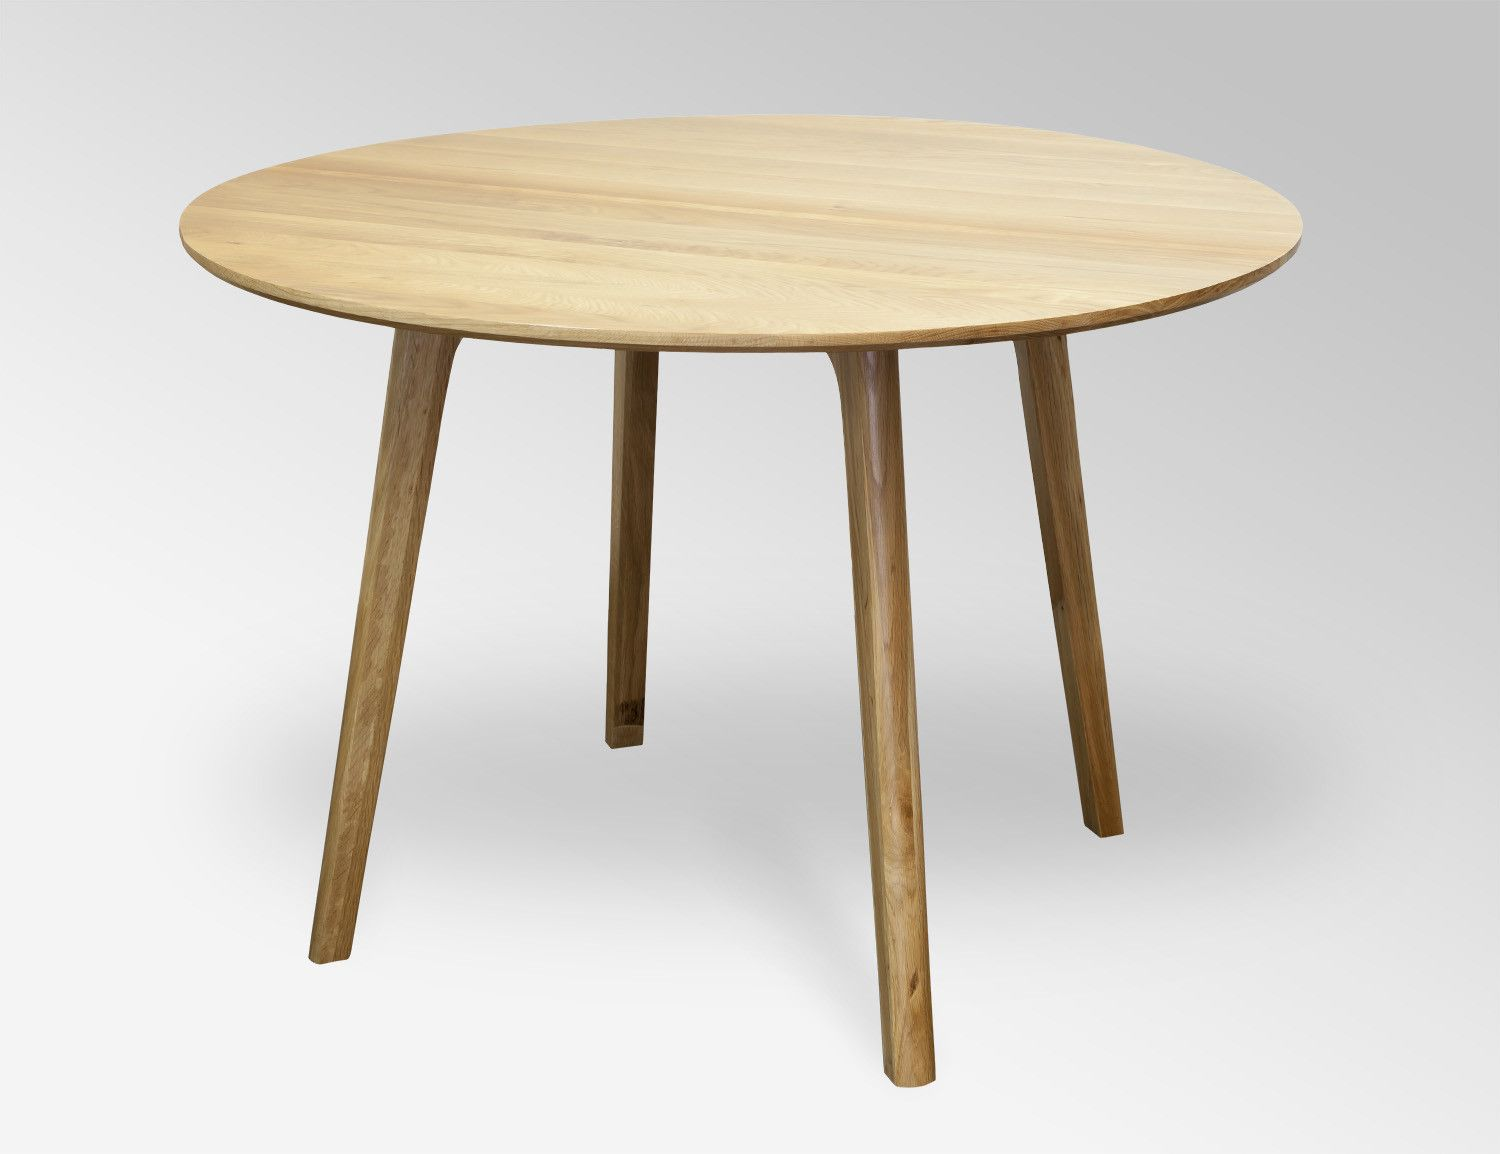 Convair Oak Round Dining Table | Temple & Webster | Dining Table ...